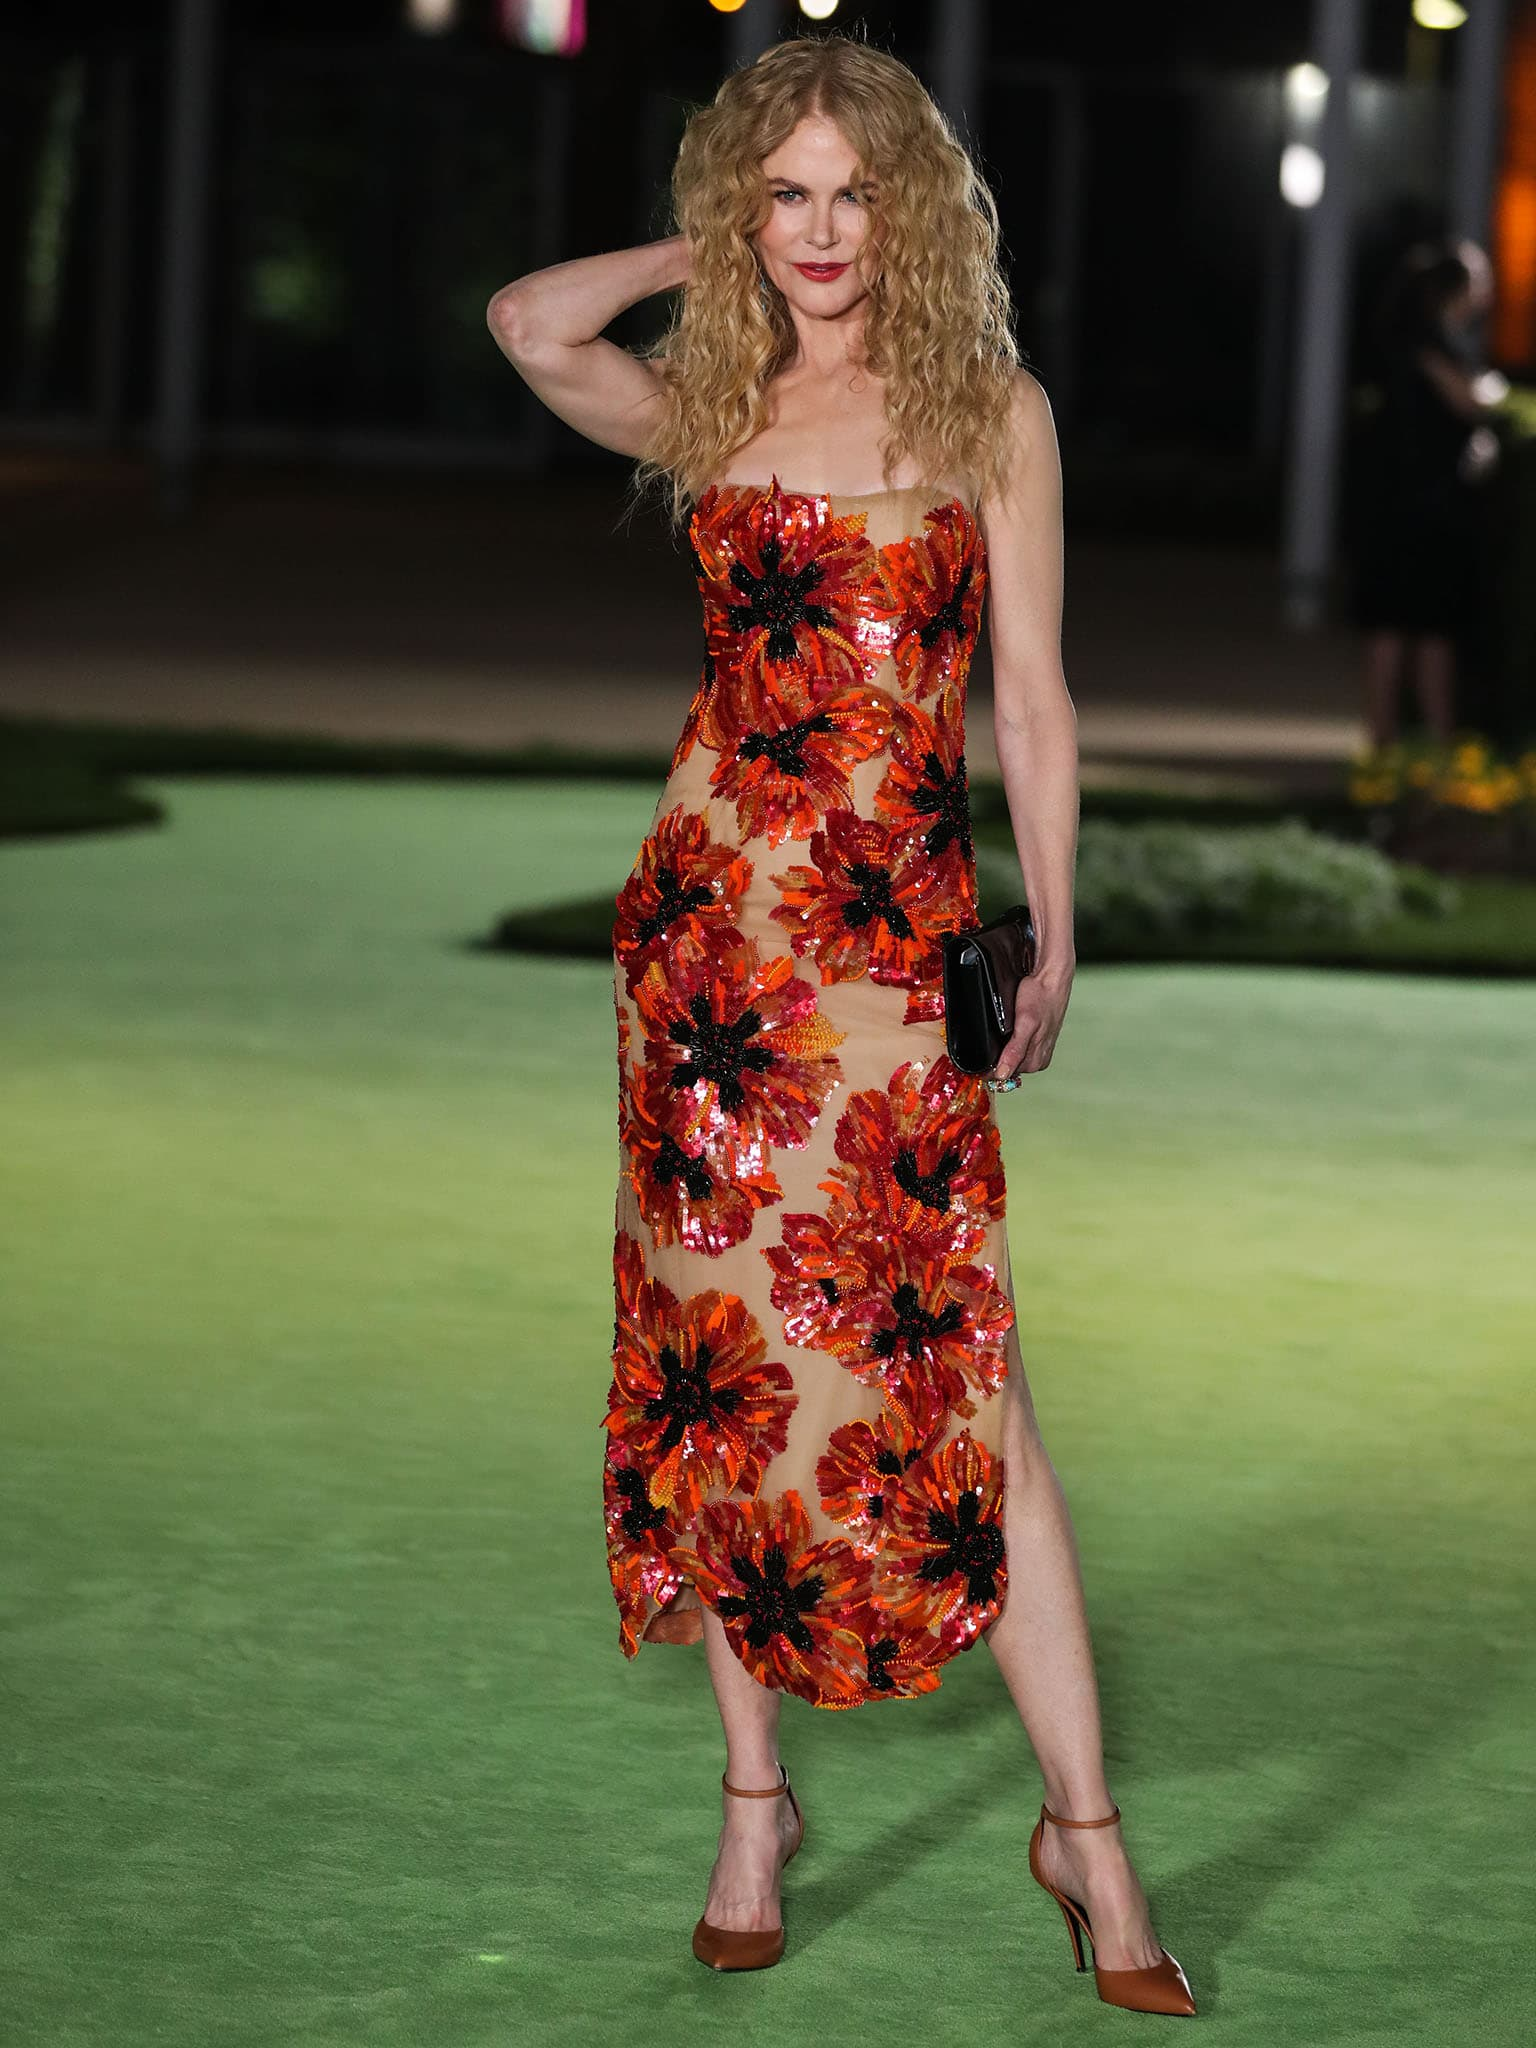 Nicole Kidman at The Academy Museum of Motion Pictures Opening Gala on September 24, 2021